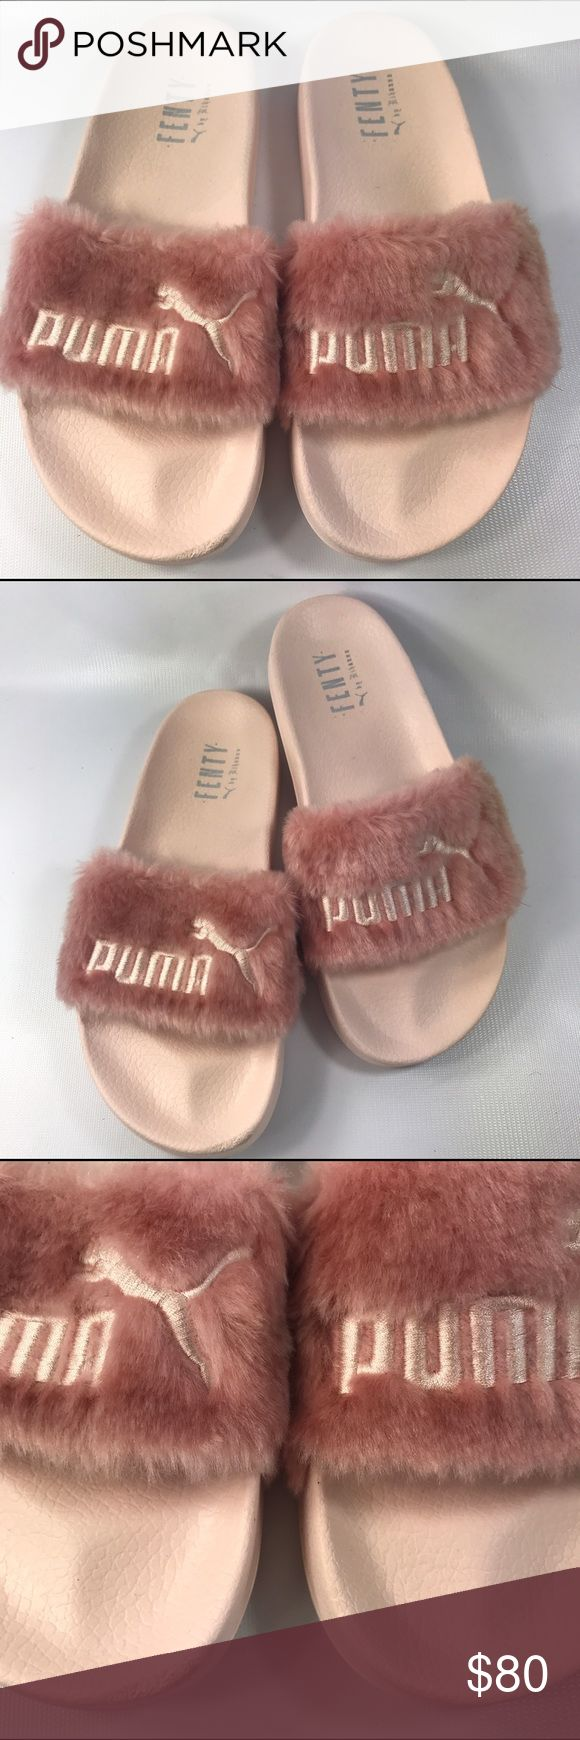 Pink Puma Fenty By Rihanna slides! Size 8.5 Really cute pink Fenty Puma by Rihanna Slides, size 8.5! These are in excellent condition besides a very small scuff on the tip of the right footbed. Hardly noticeable & otherwise perfect ;-) No trades at this time, but thanks so much for looking! Puma Shoes Sandals